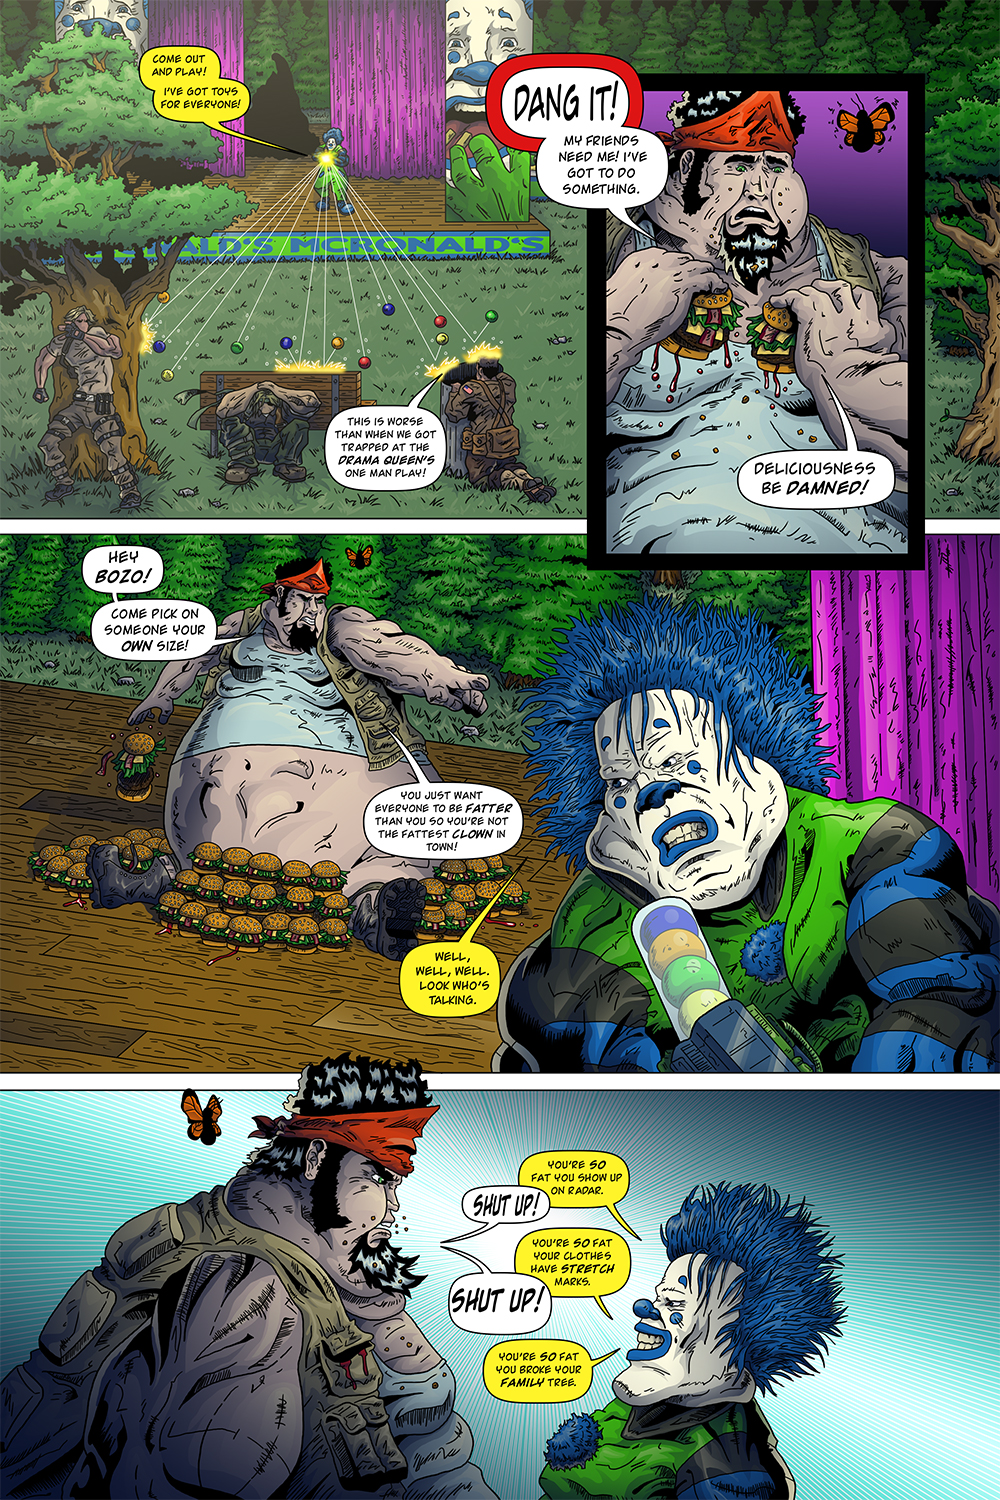 "MISSION 009: PAGE 20 ""HEY BOZO!"""